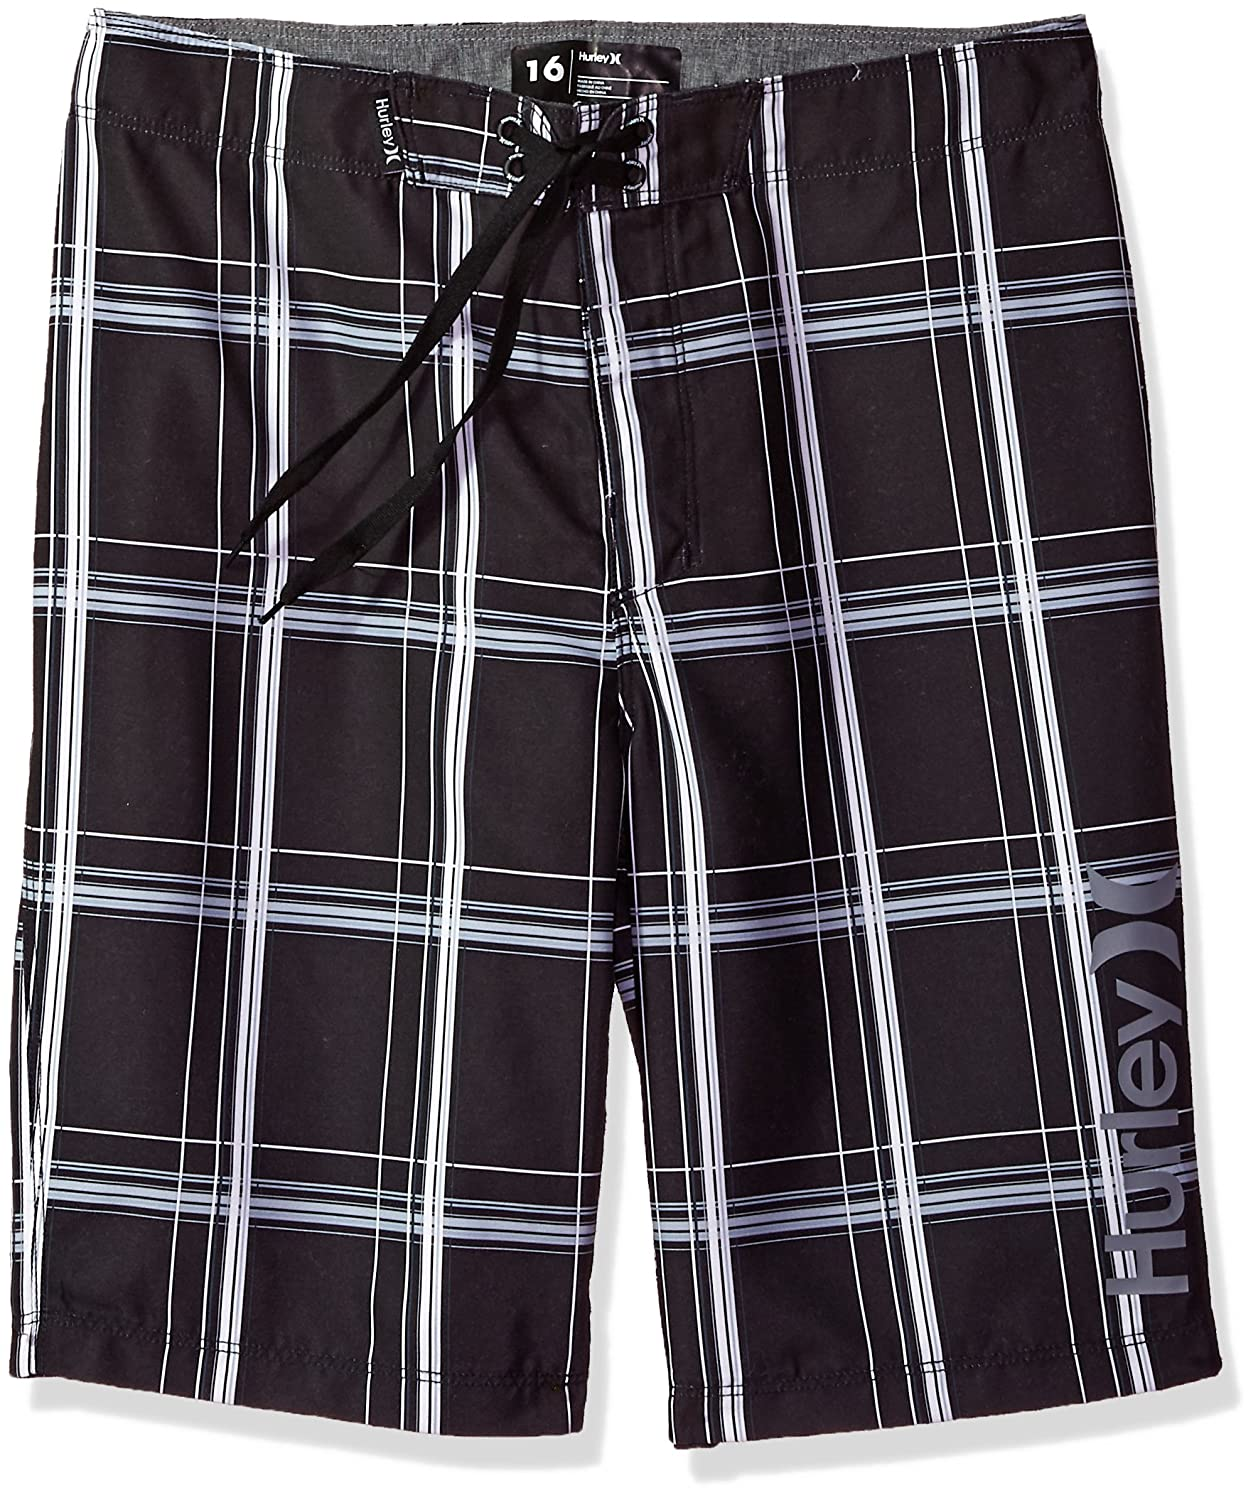 12d9791b8b Pull On closure. Machine Wash Board shorts with a plaid print and a one and  only graphic logo. Premium fabric. One back pocket. Straight hem